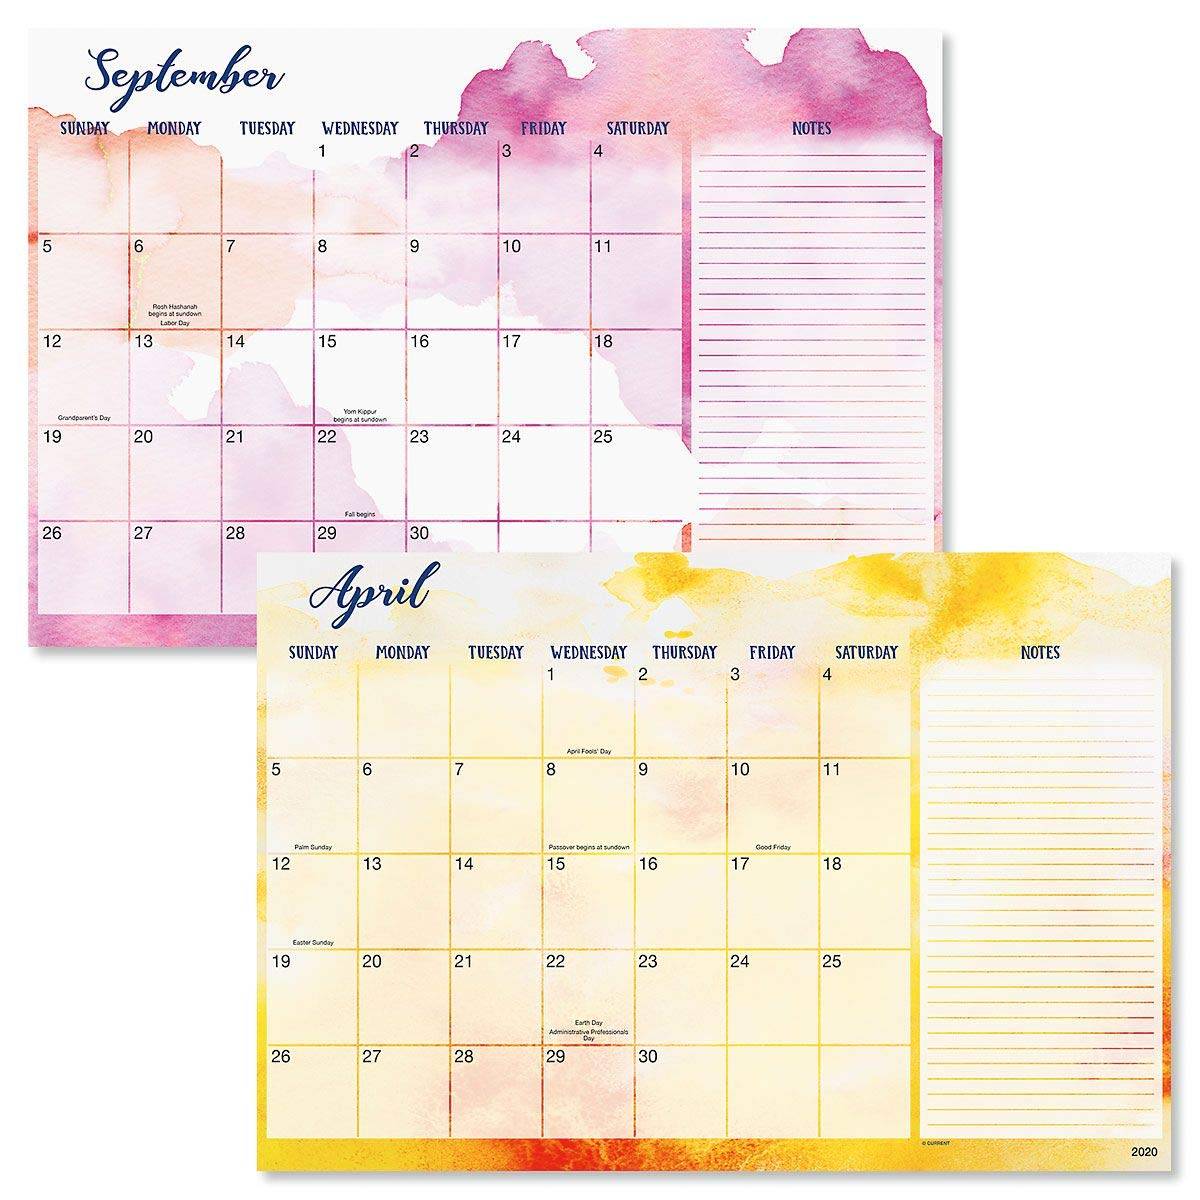 2020-2021 Brush Strokes Calendar Pad - 11'' x 16-1/4'', Includes Magnets, Runs from January 2020 to December 2021 by Current